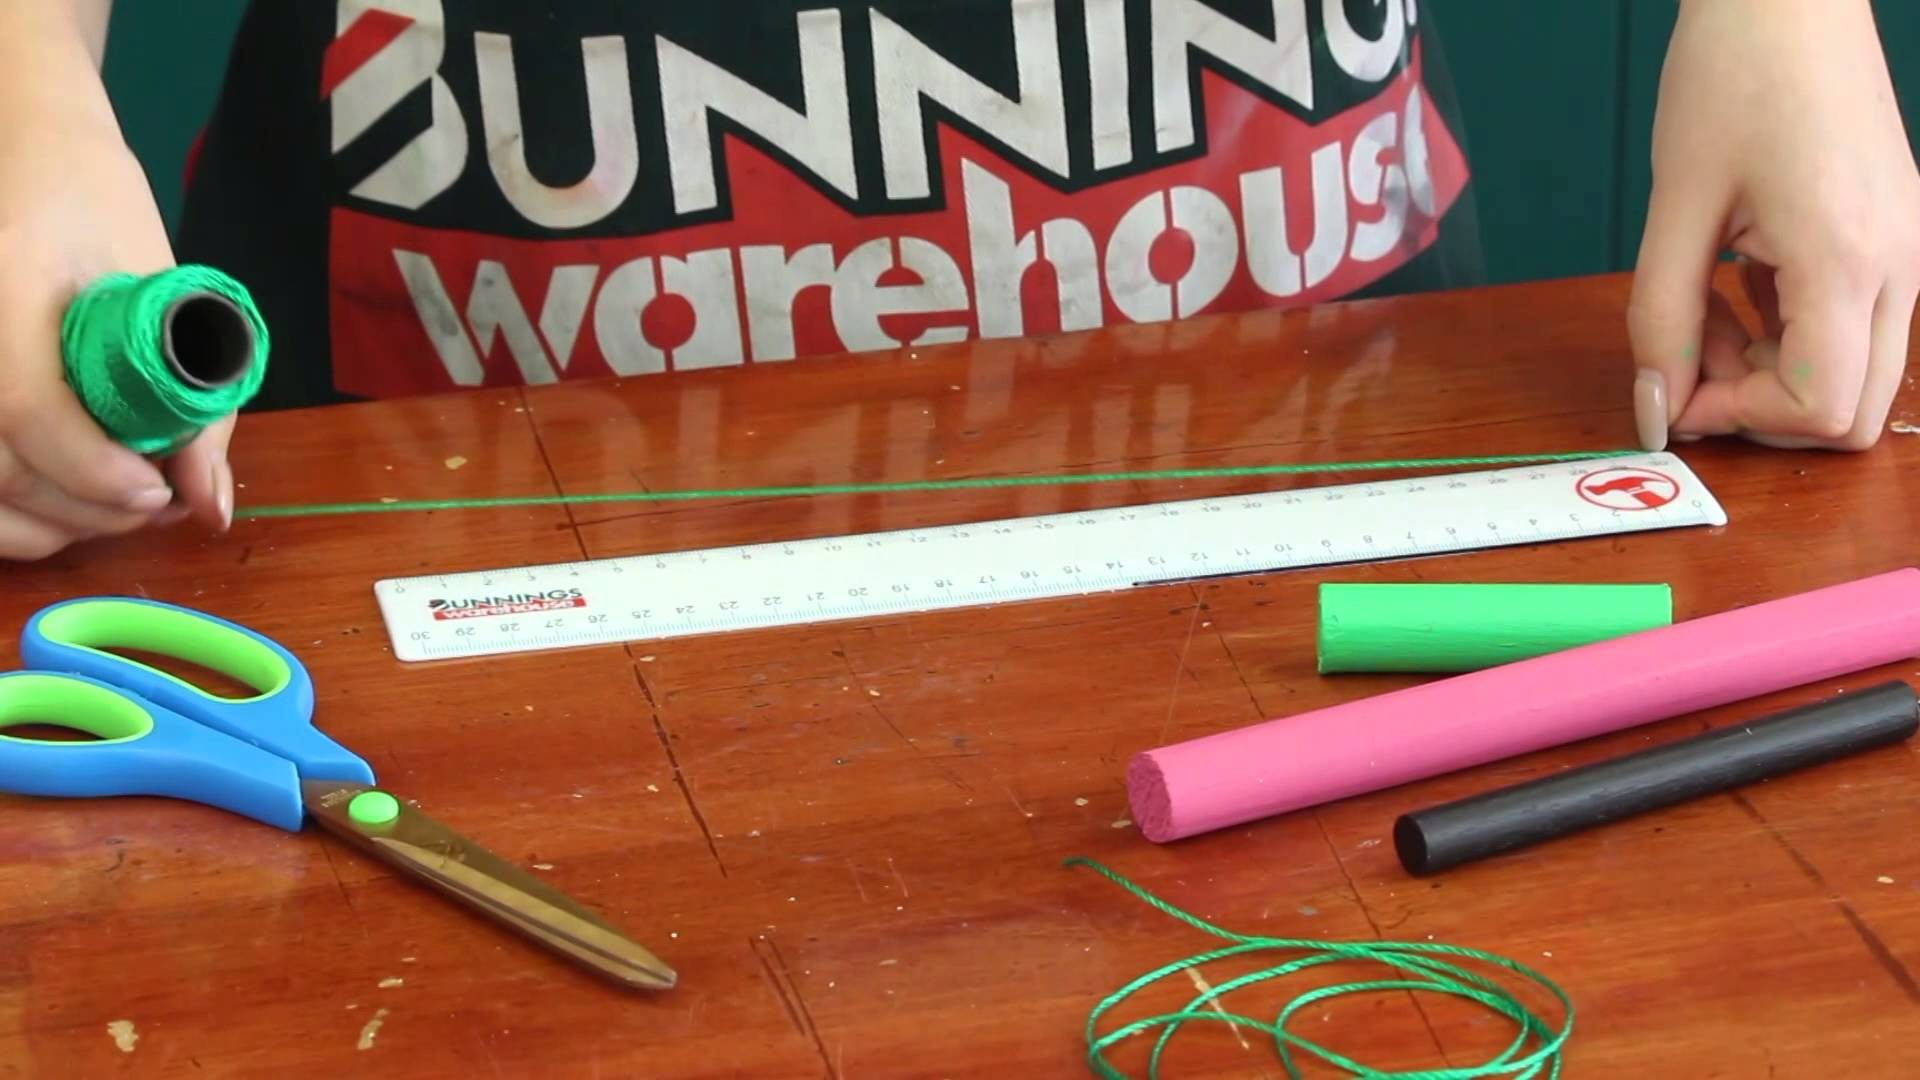 How To Make a Wind Chime - DIY at Bunnings